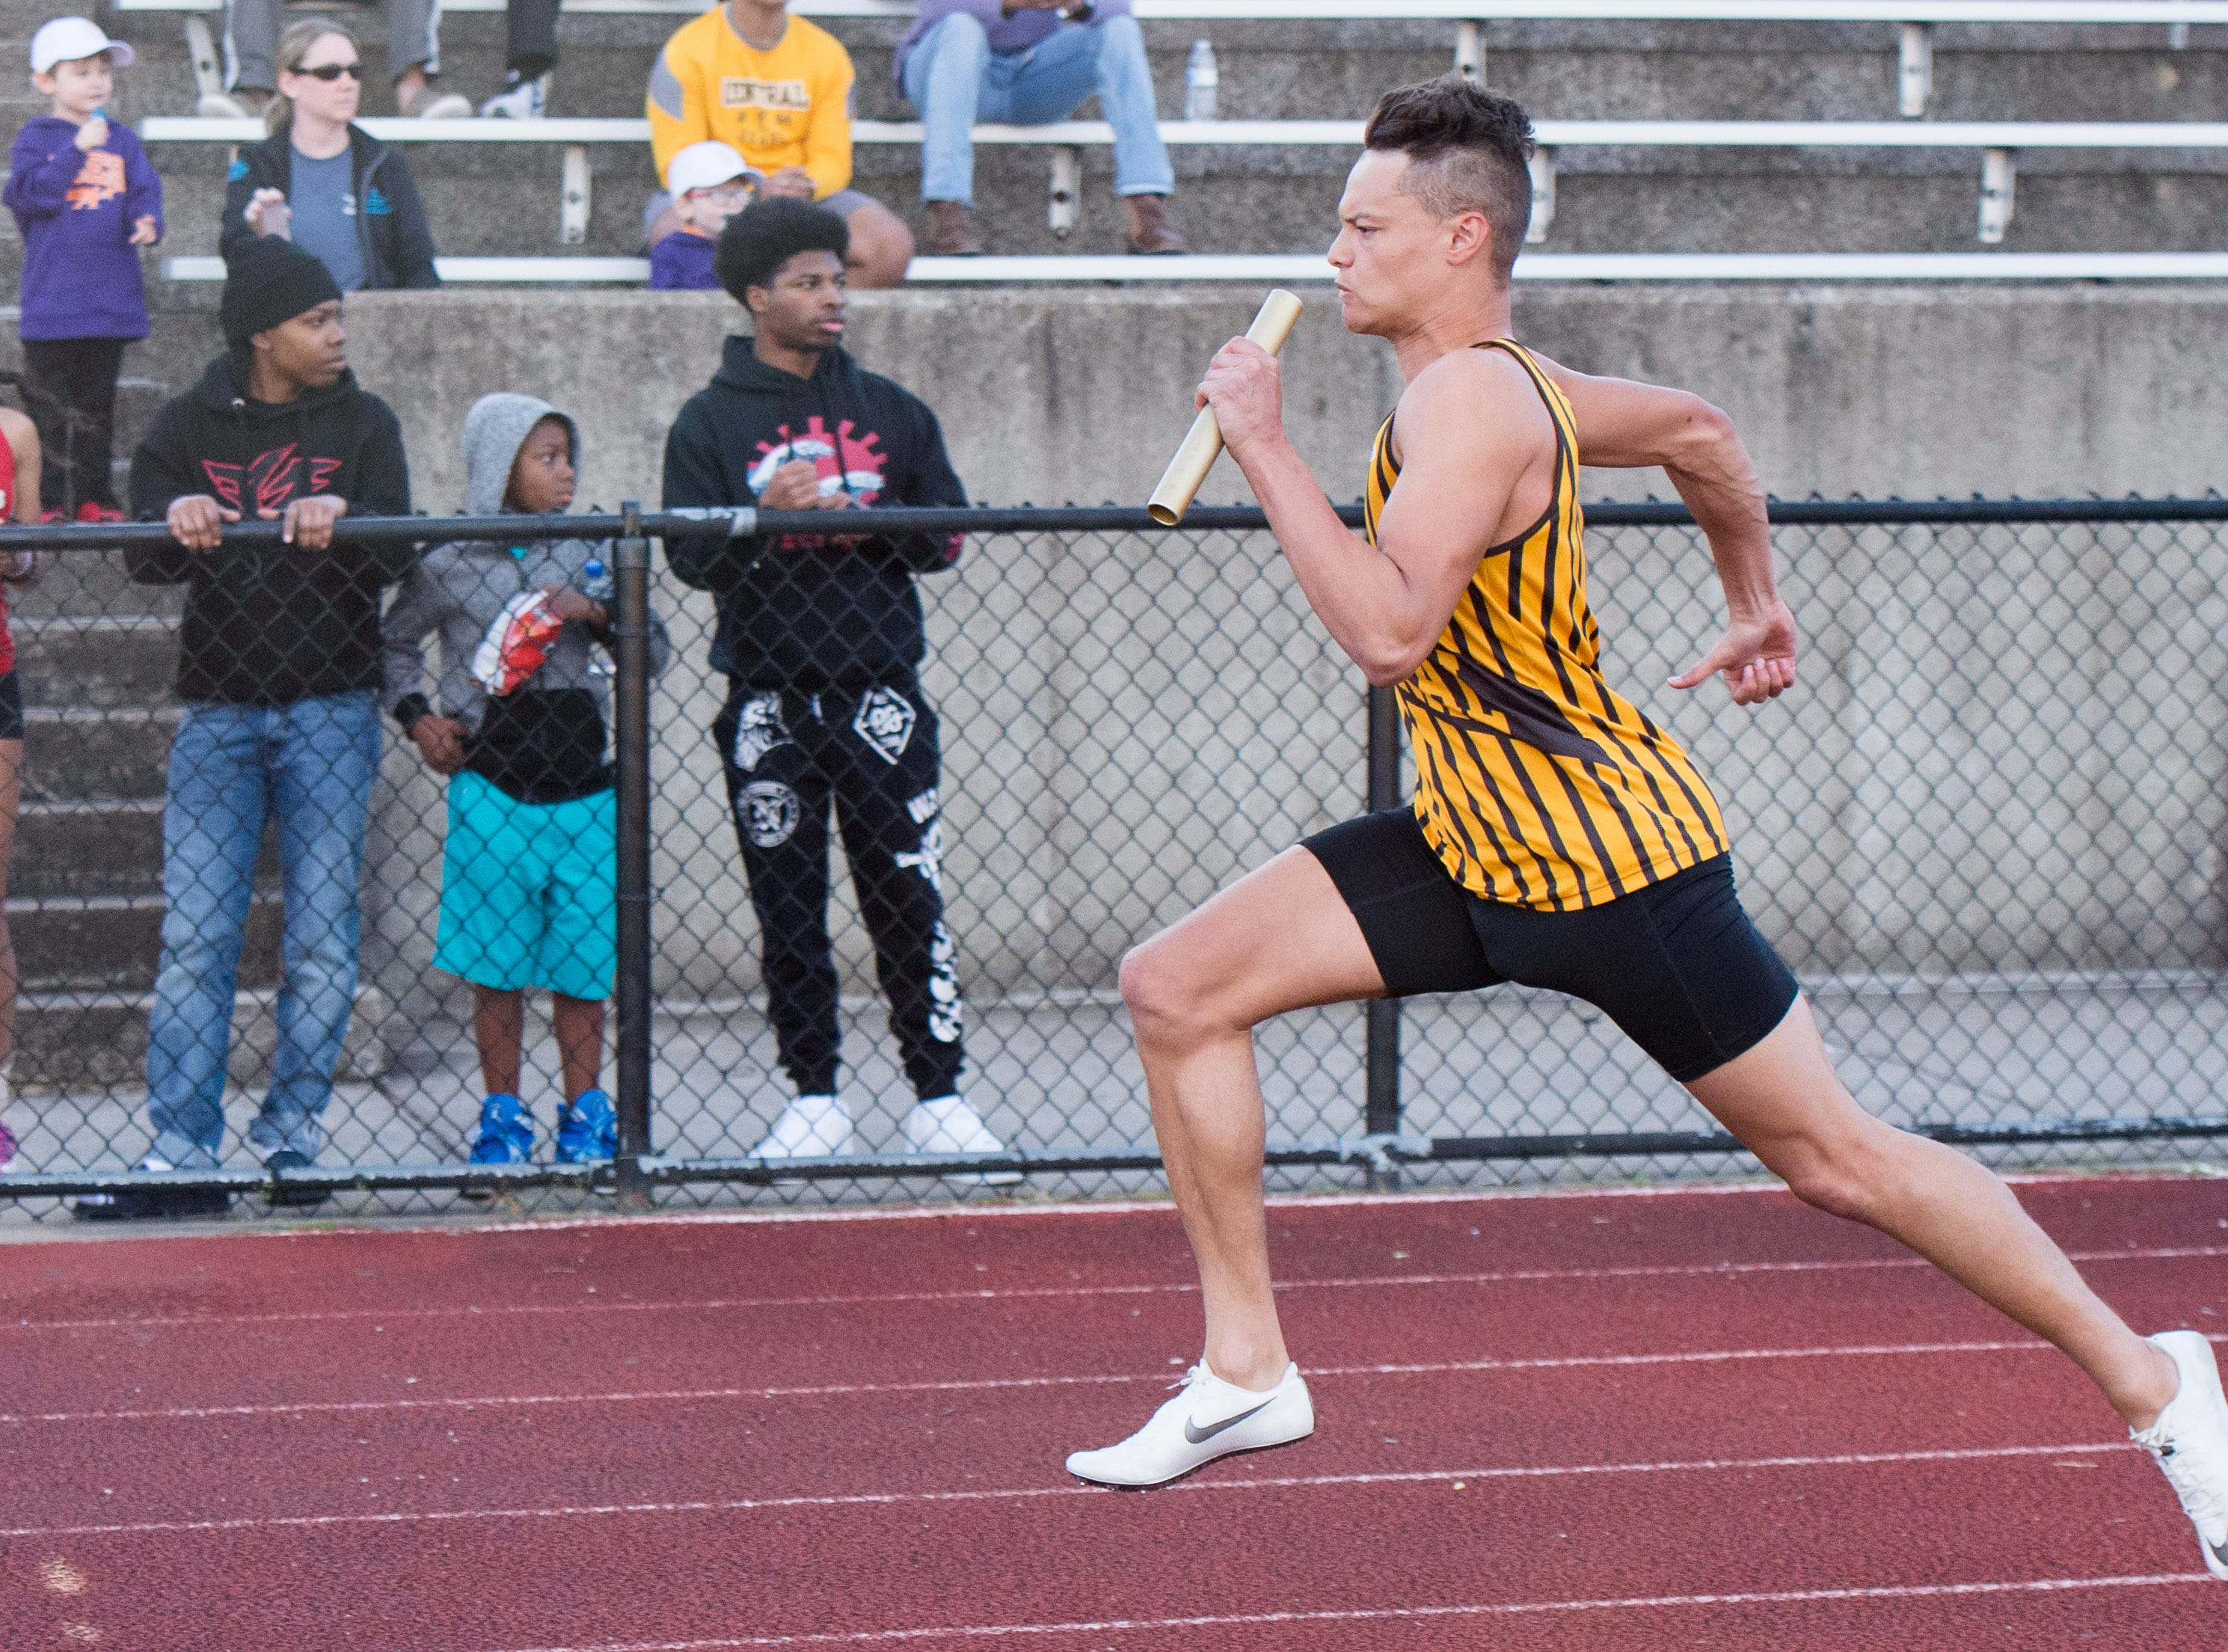 Central's Jalen Bowman spends ahead of the rest in the last stretch of the boys 400m relay event during the 2019 City Track and Field meet at Central High School Friday, April 12, 2019.